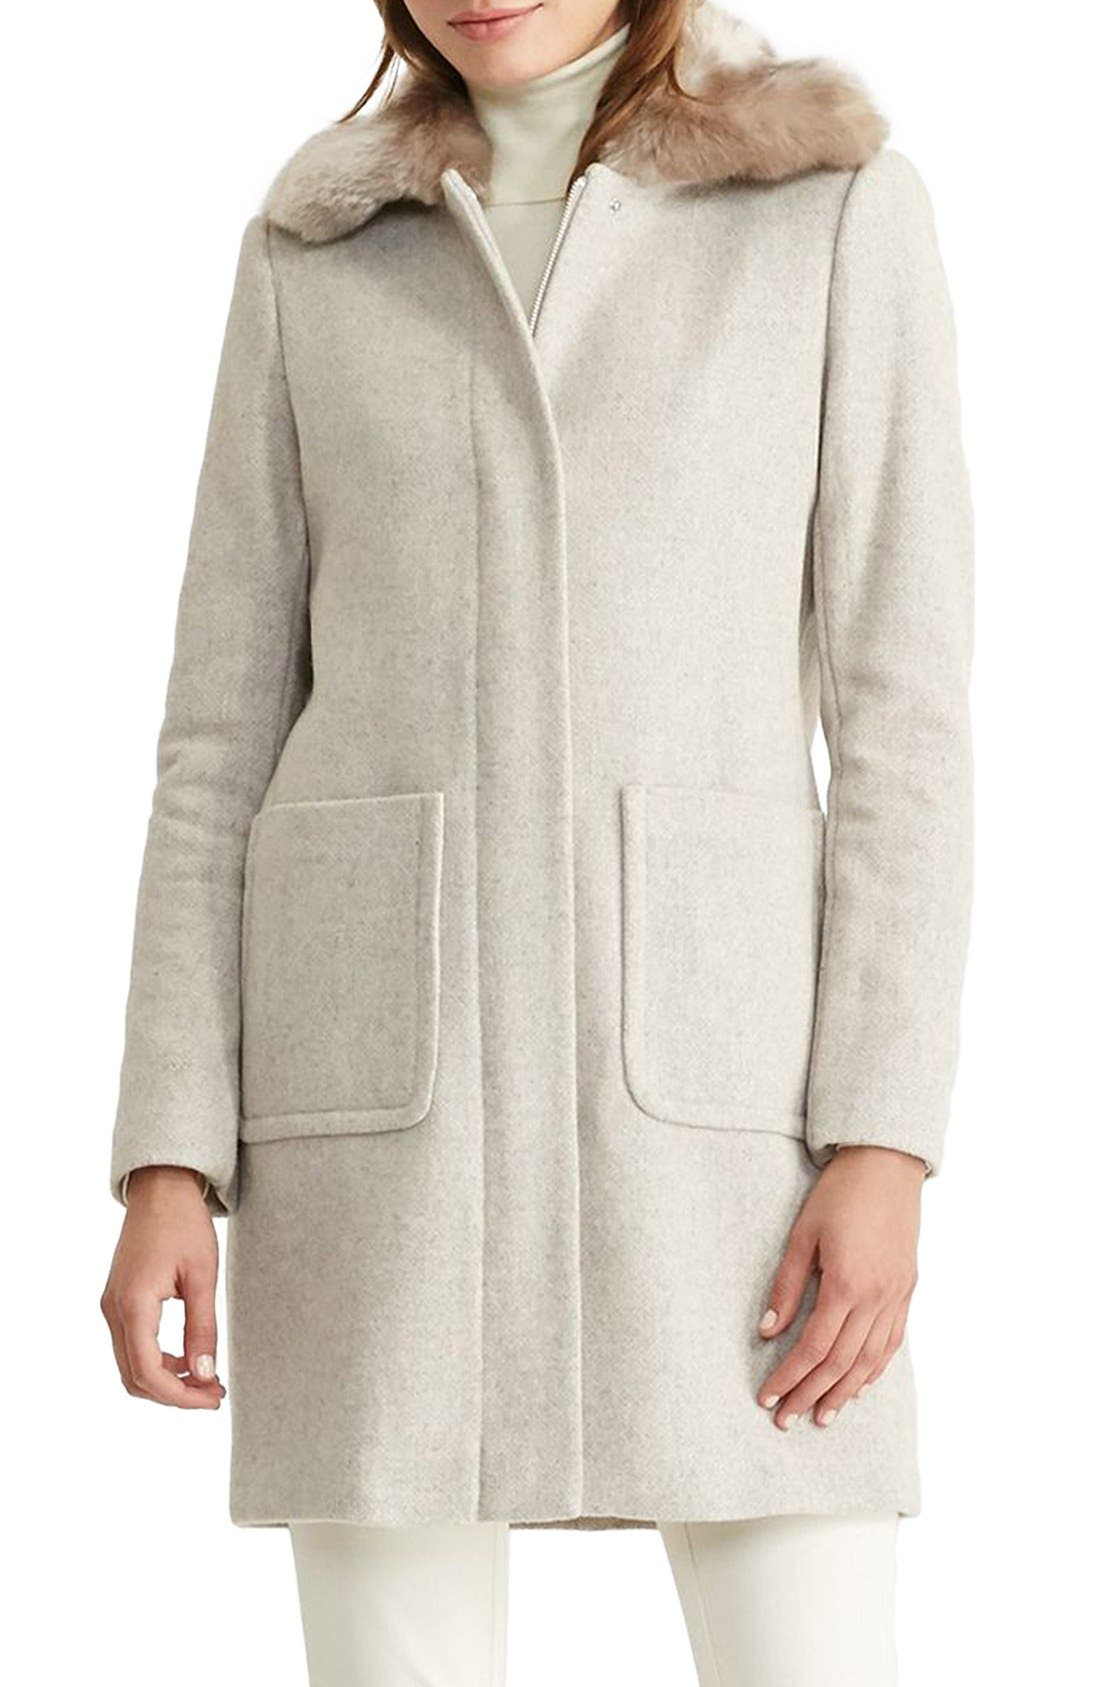 Alternate Image 1 Selected - Lauren Ralph Lauren Wool Blend Coat with Faux Fur Collar (Regular & Petite)